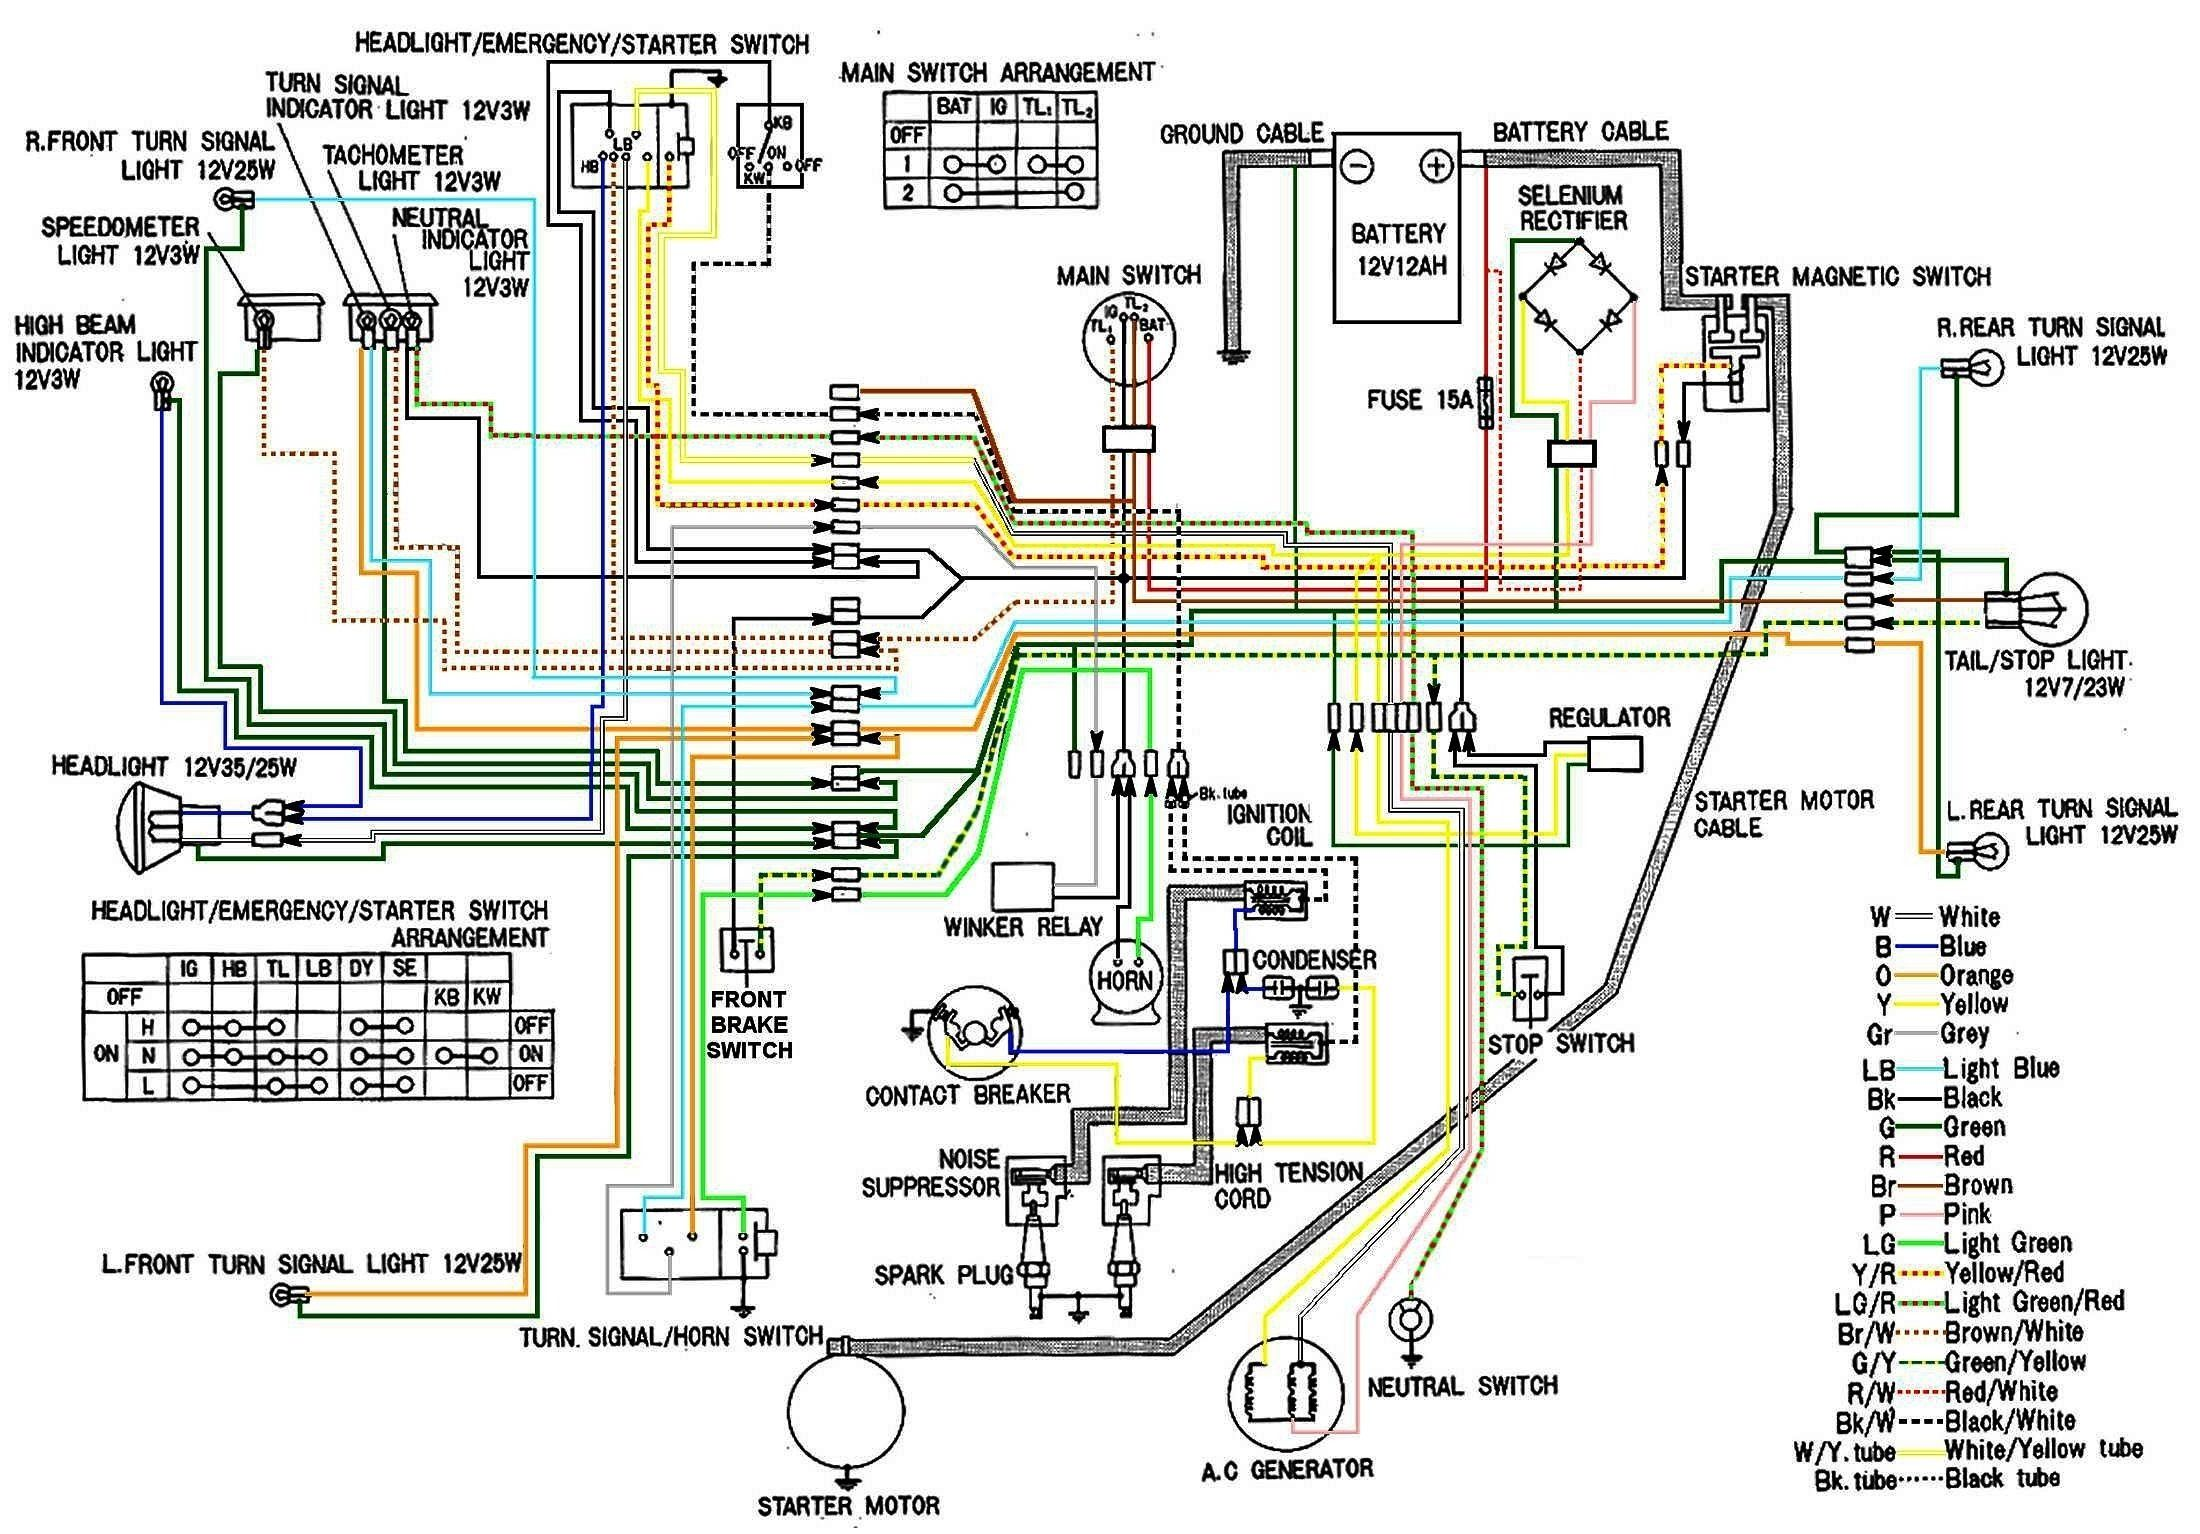 DIAGRAM] 1978 Honda Cb550 Wiring Diagram FULL Version HD Quality Wiring  Diagram - MG50DFXSCHEMATIC4215.CONTRABBASSIVERDIANI.ITContrabbassi di Simone e Damiano Verdiani